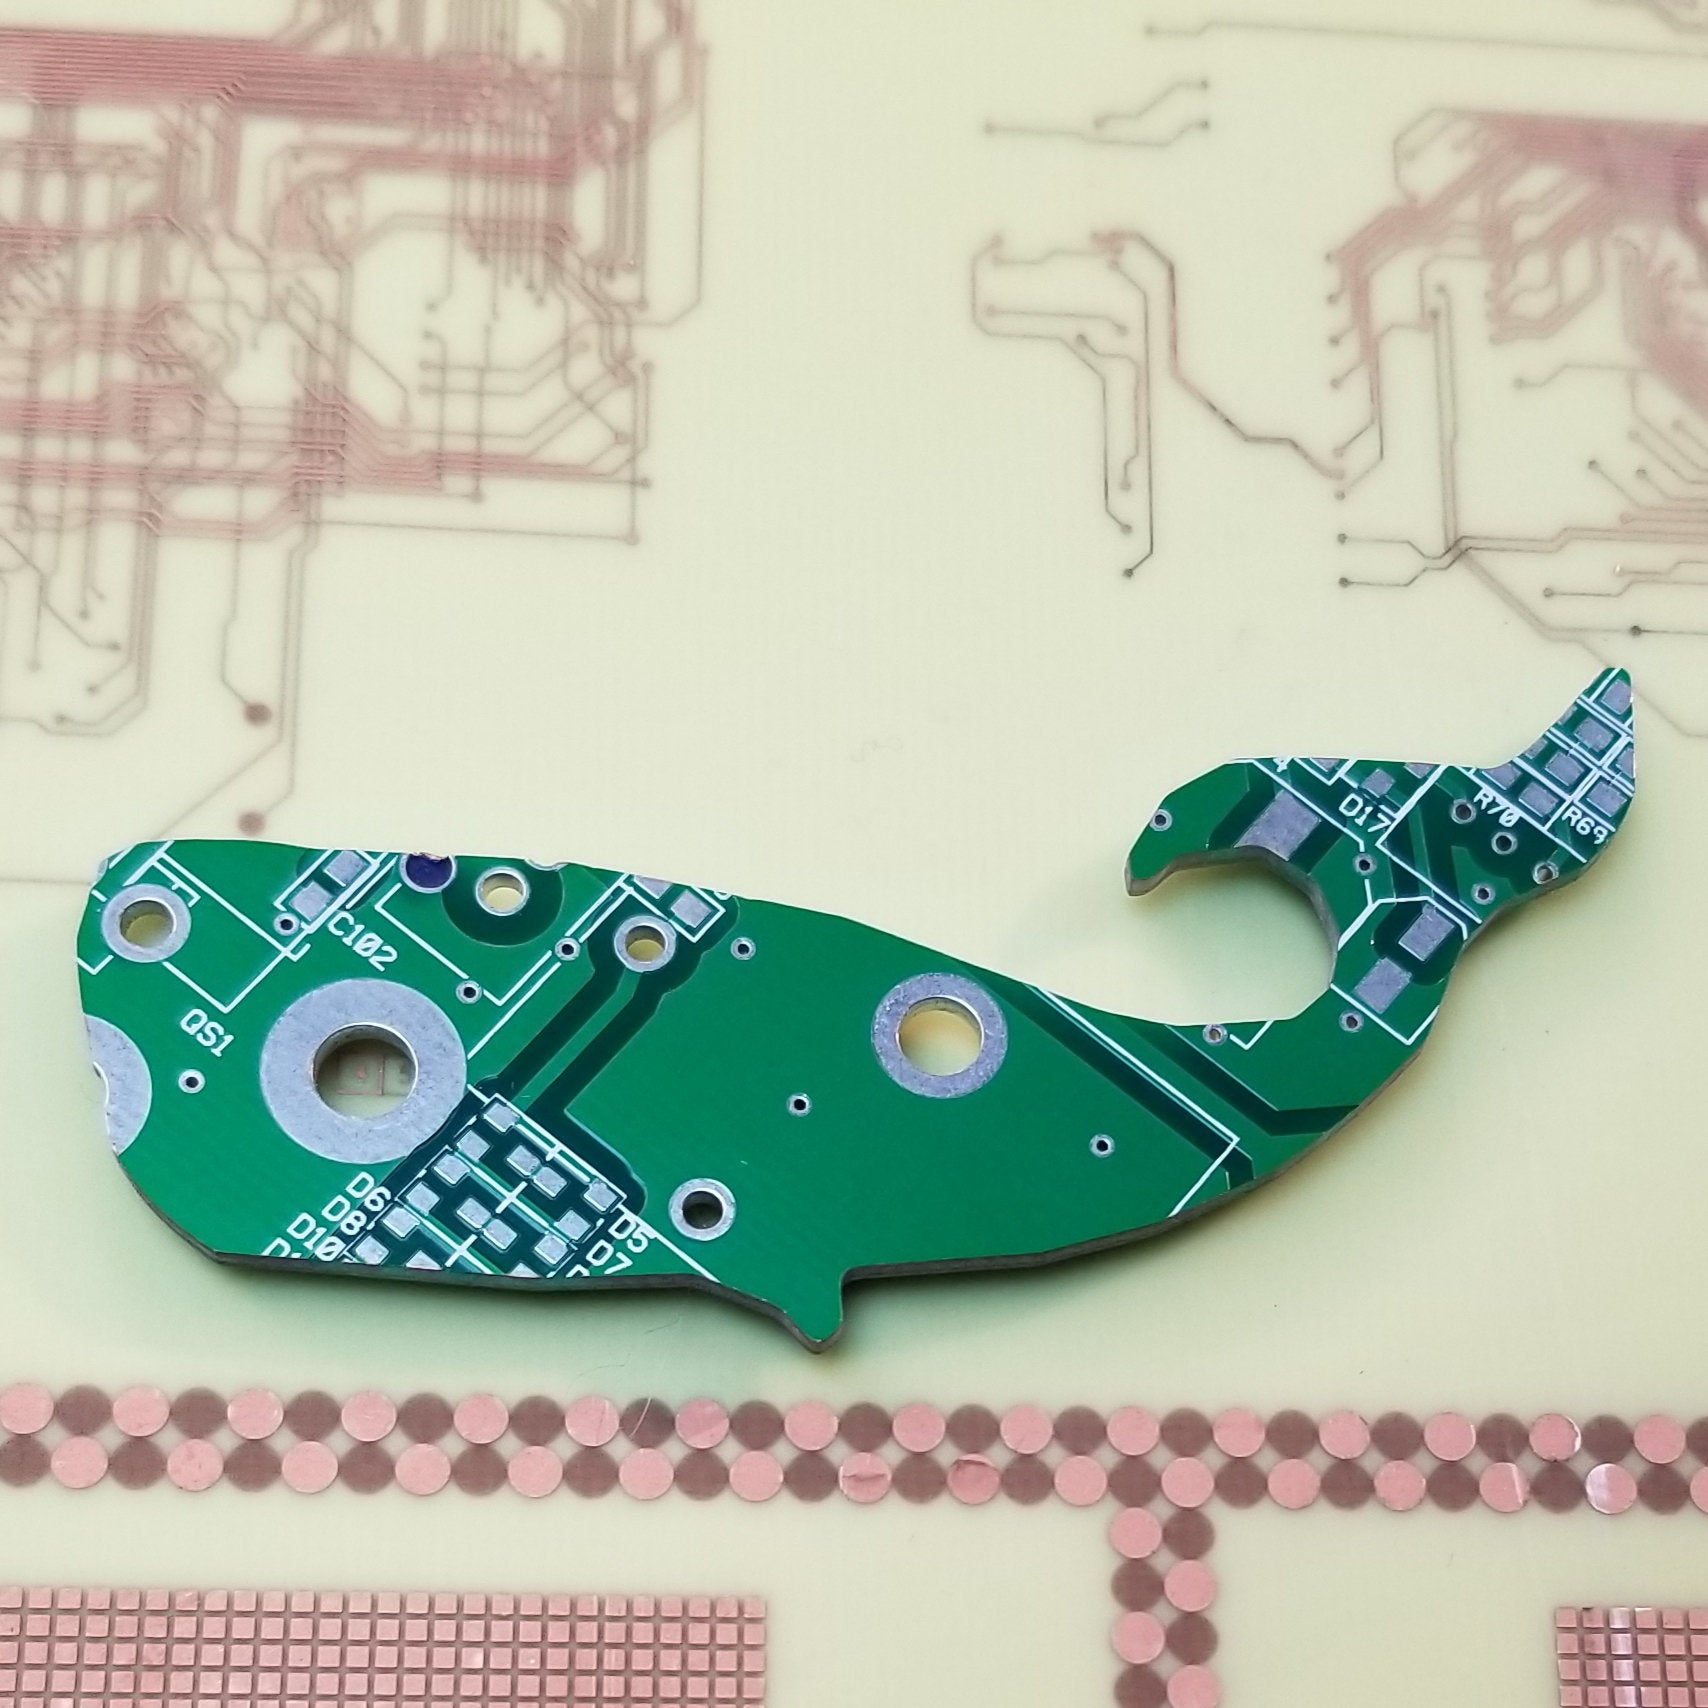 Circuit Board Whale - TechWears Ltd